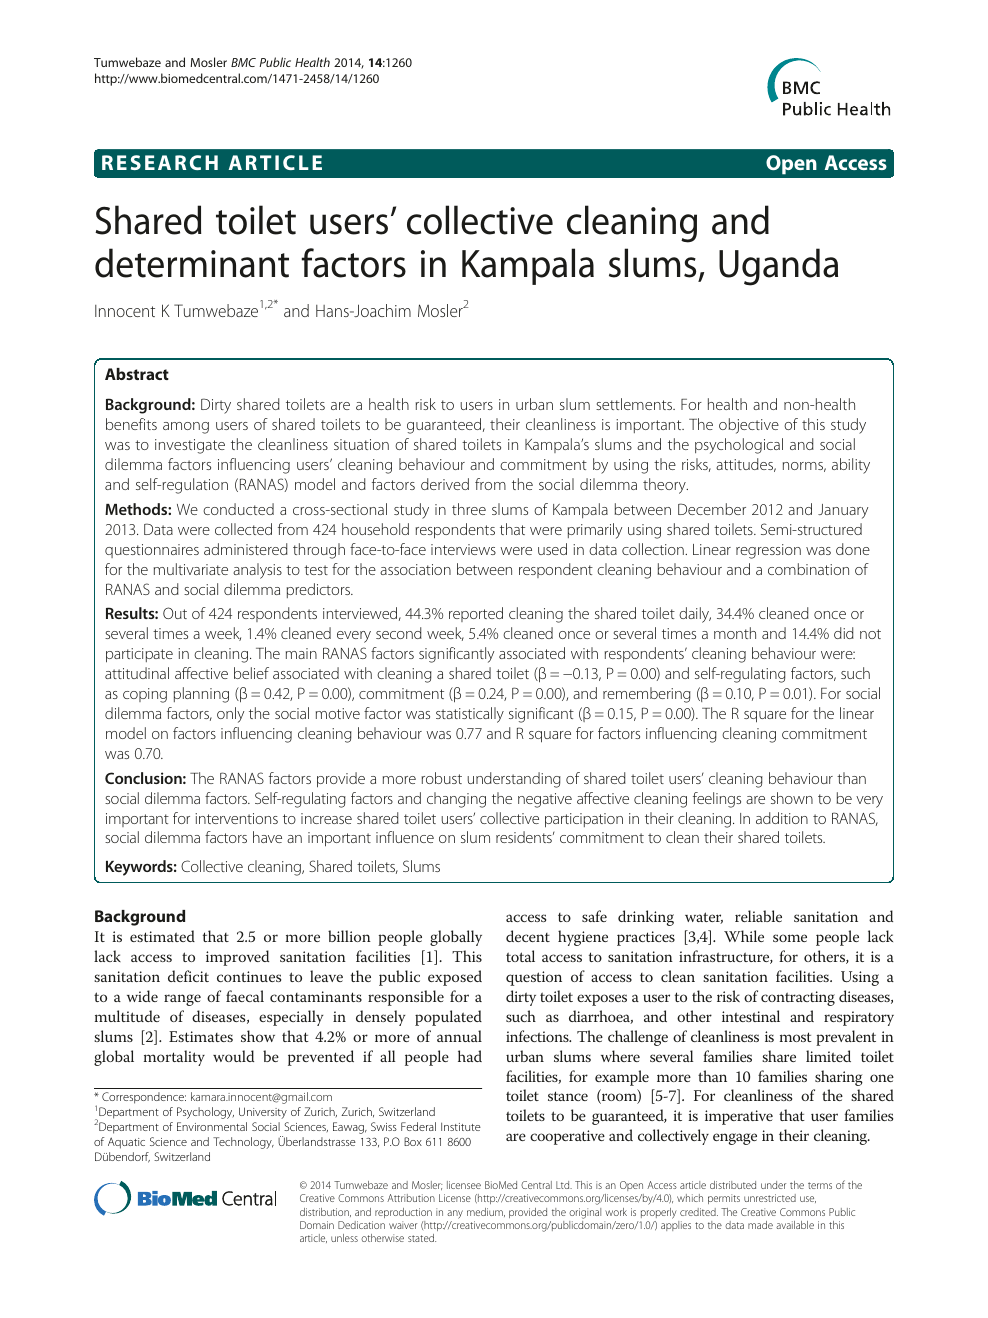 Shared toilet users' collective cleaning and determinant factors in